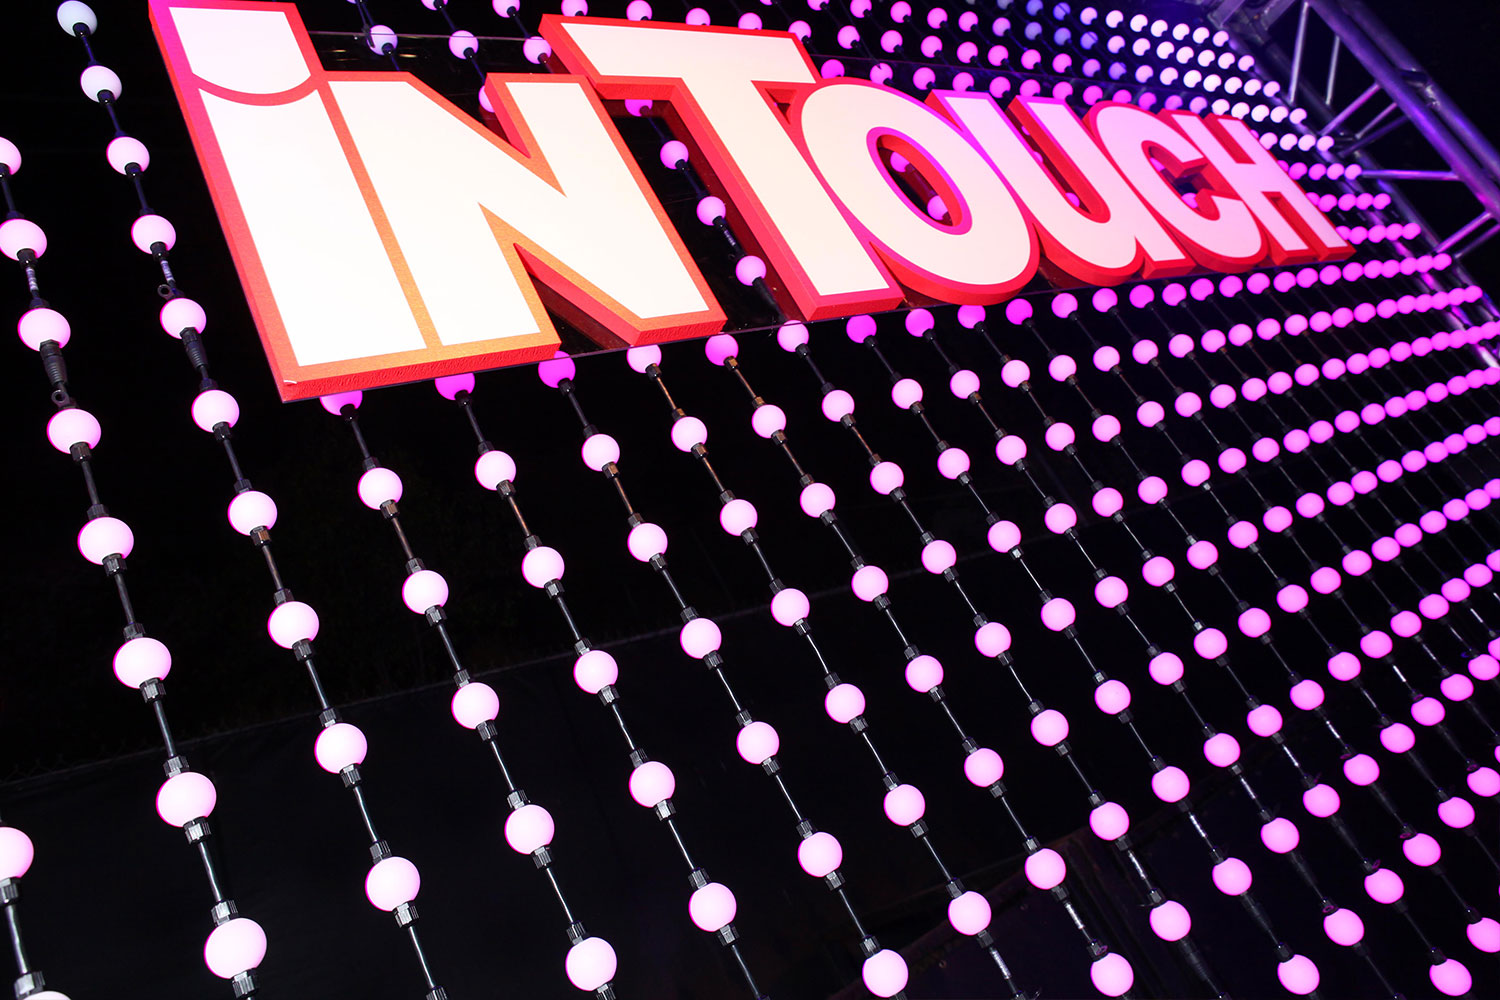 toast-event-intouch-lighting-parties-planning-10twelve.jpg